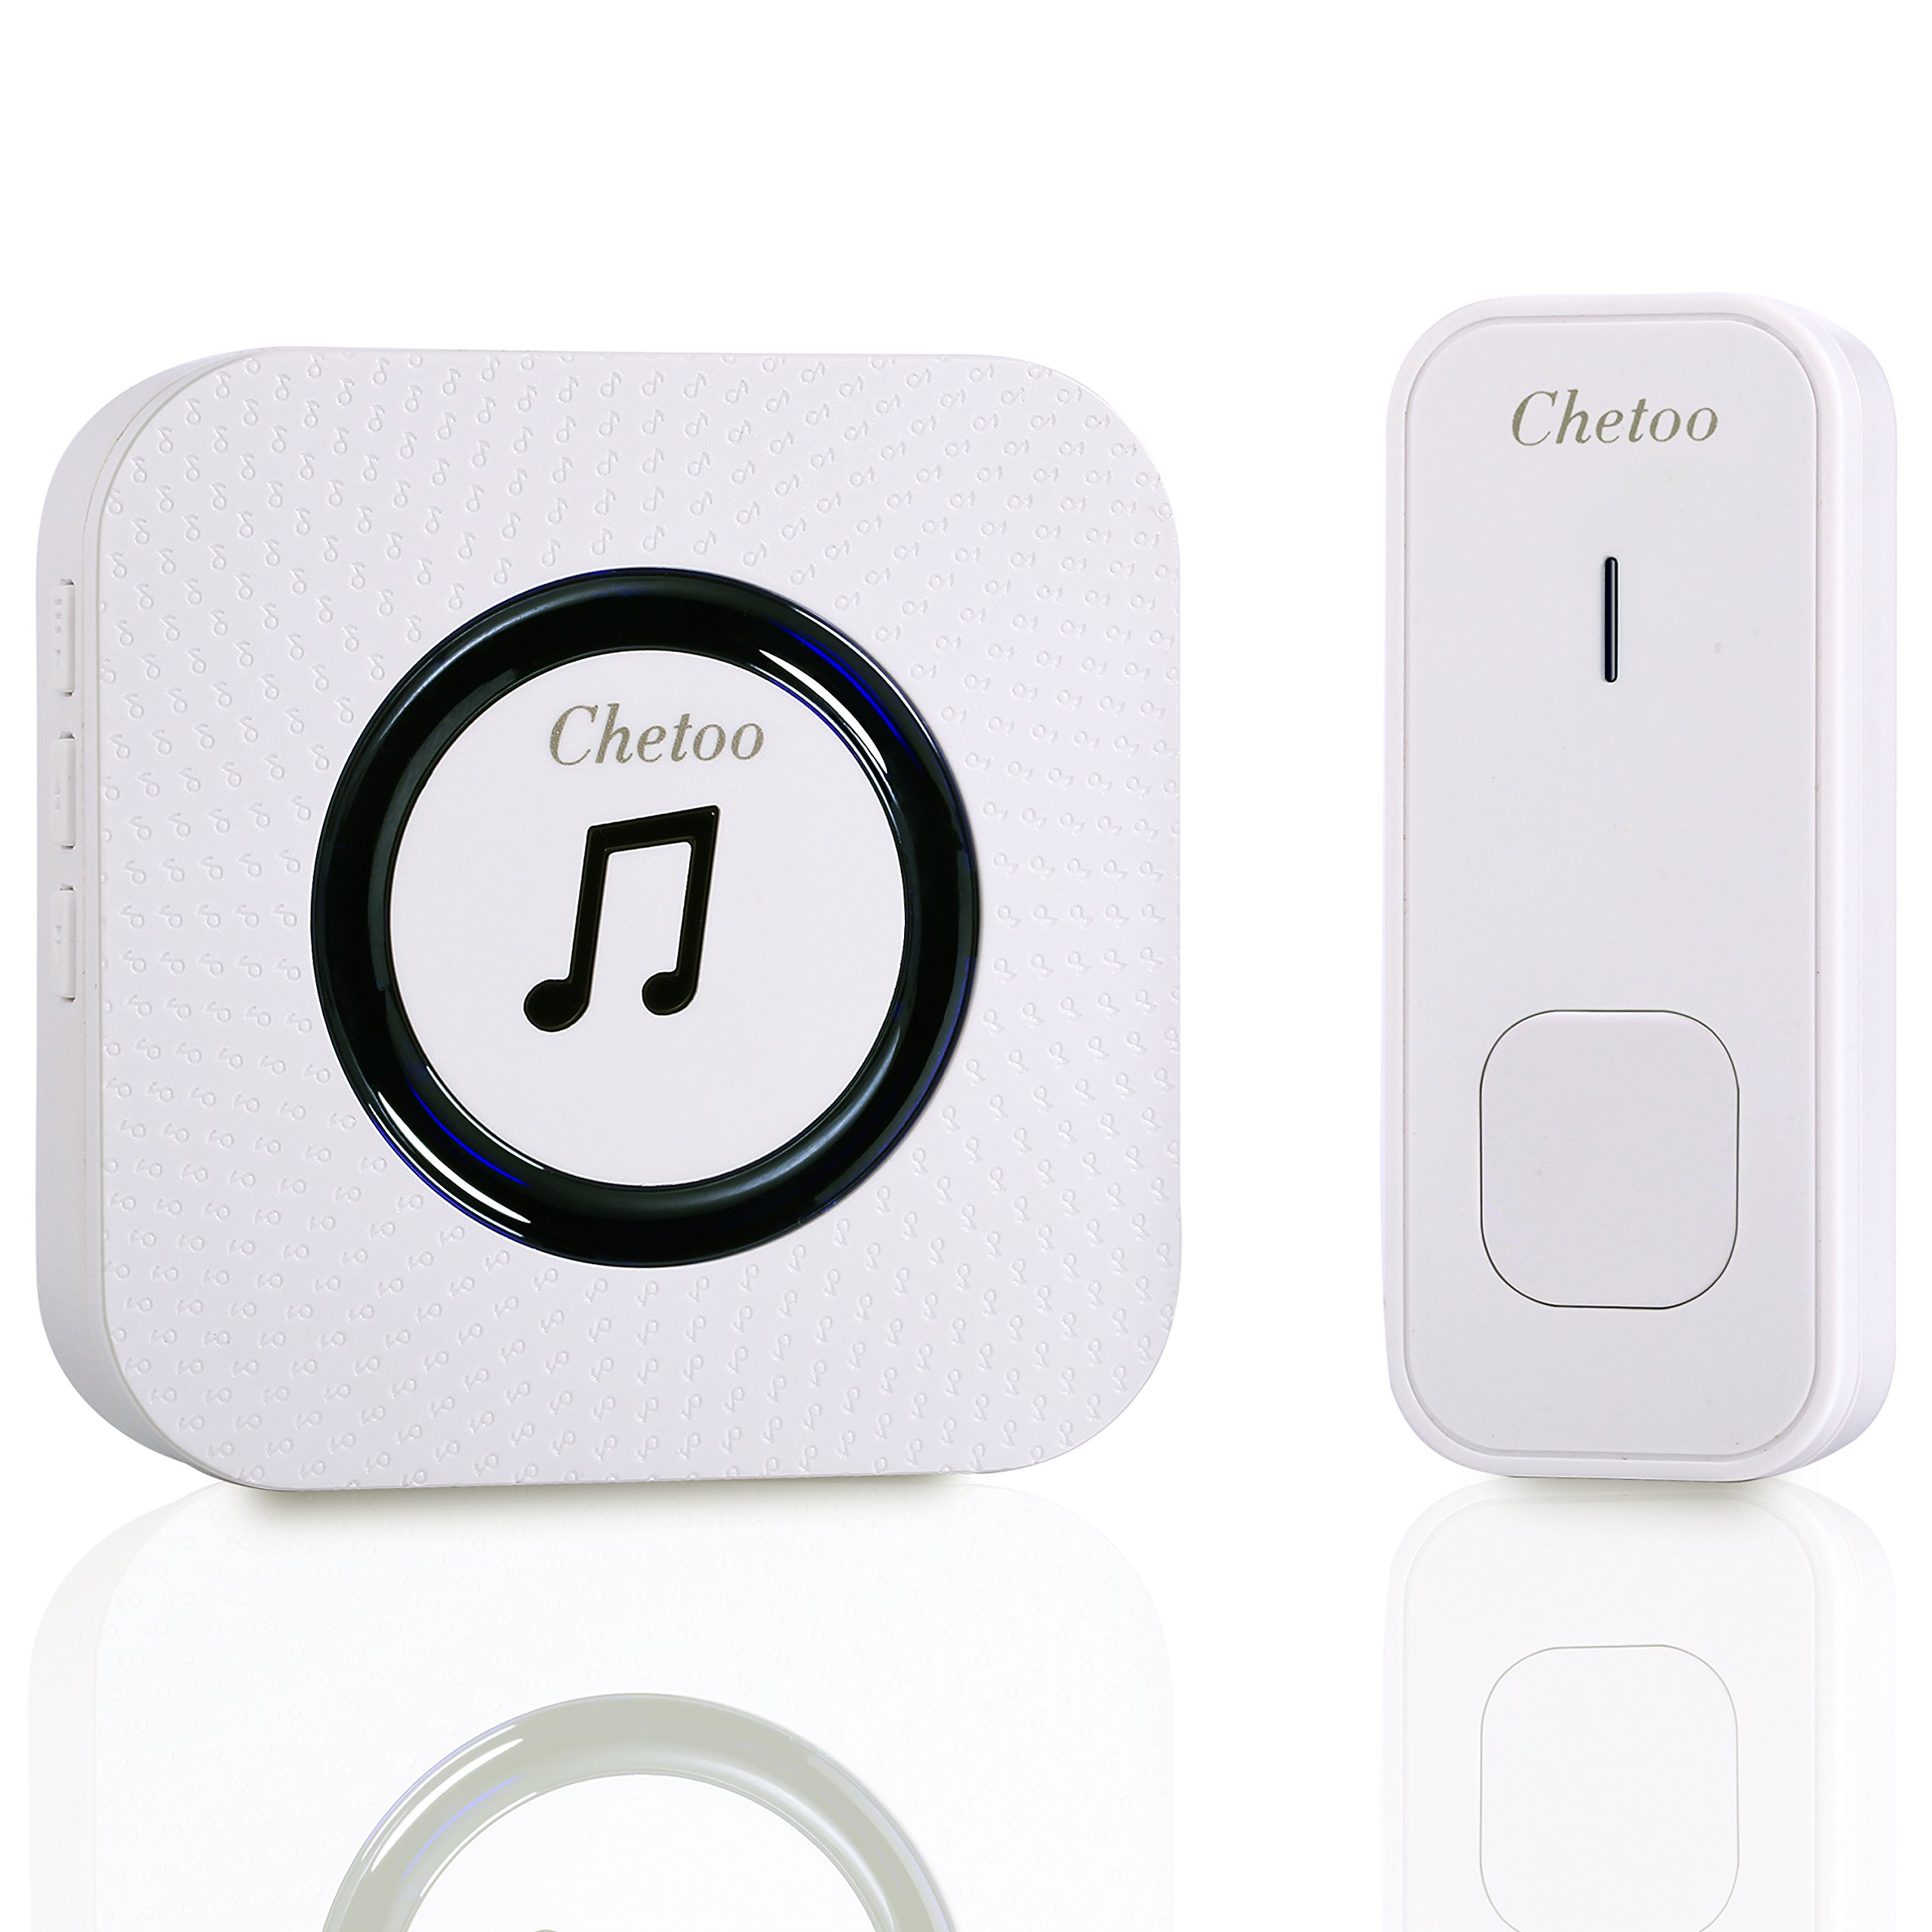 CHETOO Wireless Doorbell System- Best Set Of 1 Plug-In Long Range Wireless Receiver + 1 IP55 Waterproof Remote Push Button– Top Remote Doorbell With 55 Chimes & LED Indicator For Home/ Office- White